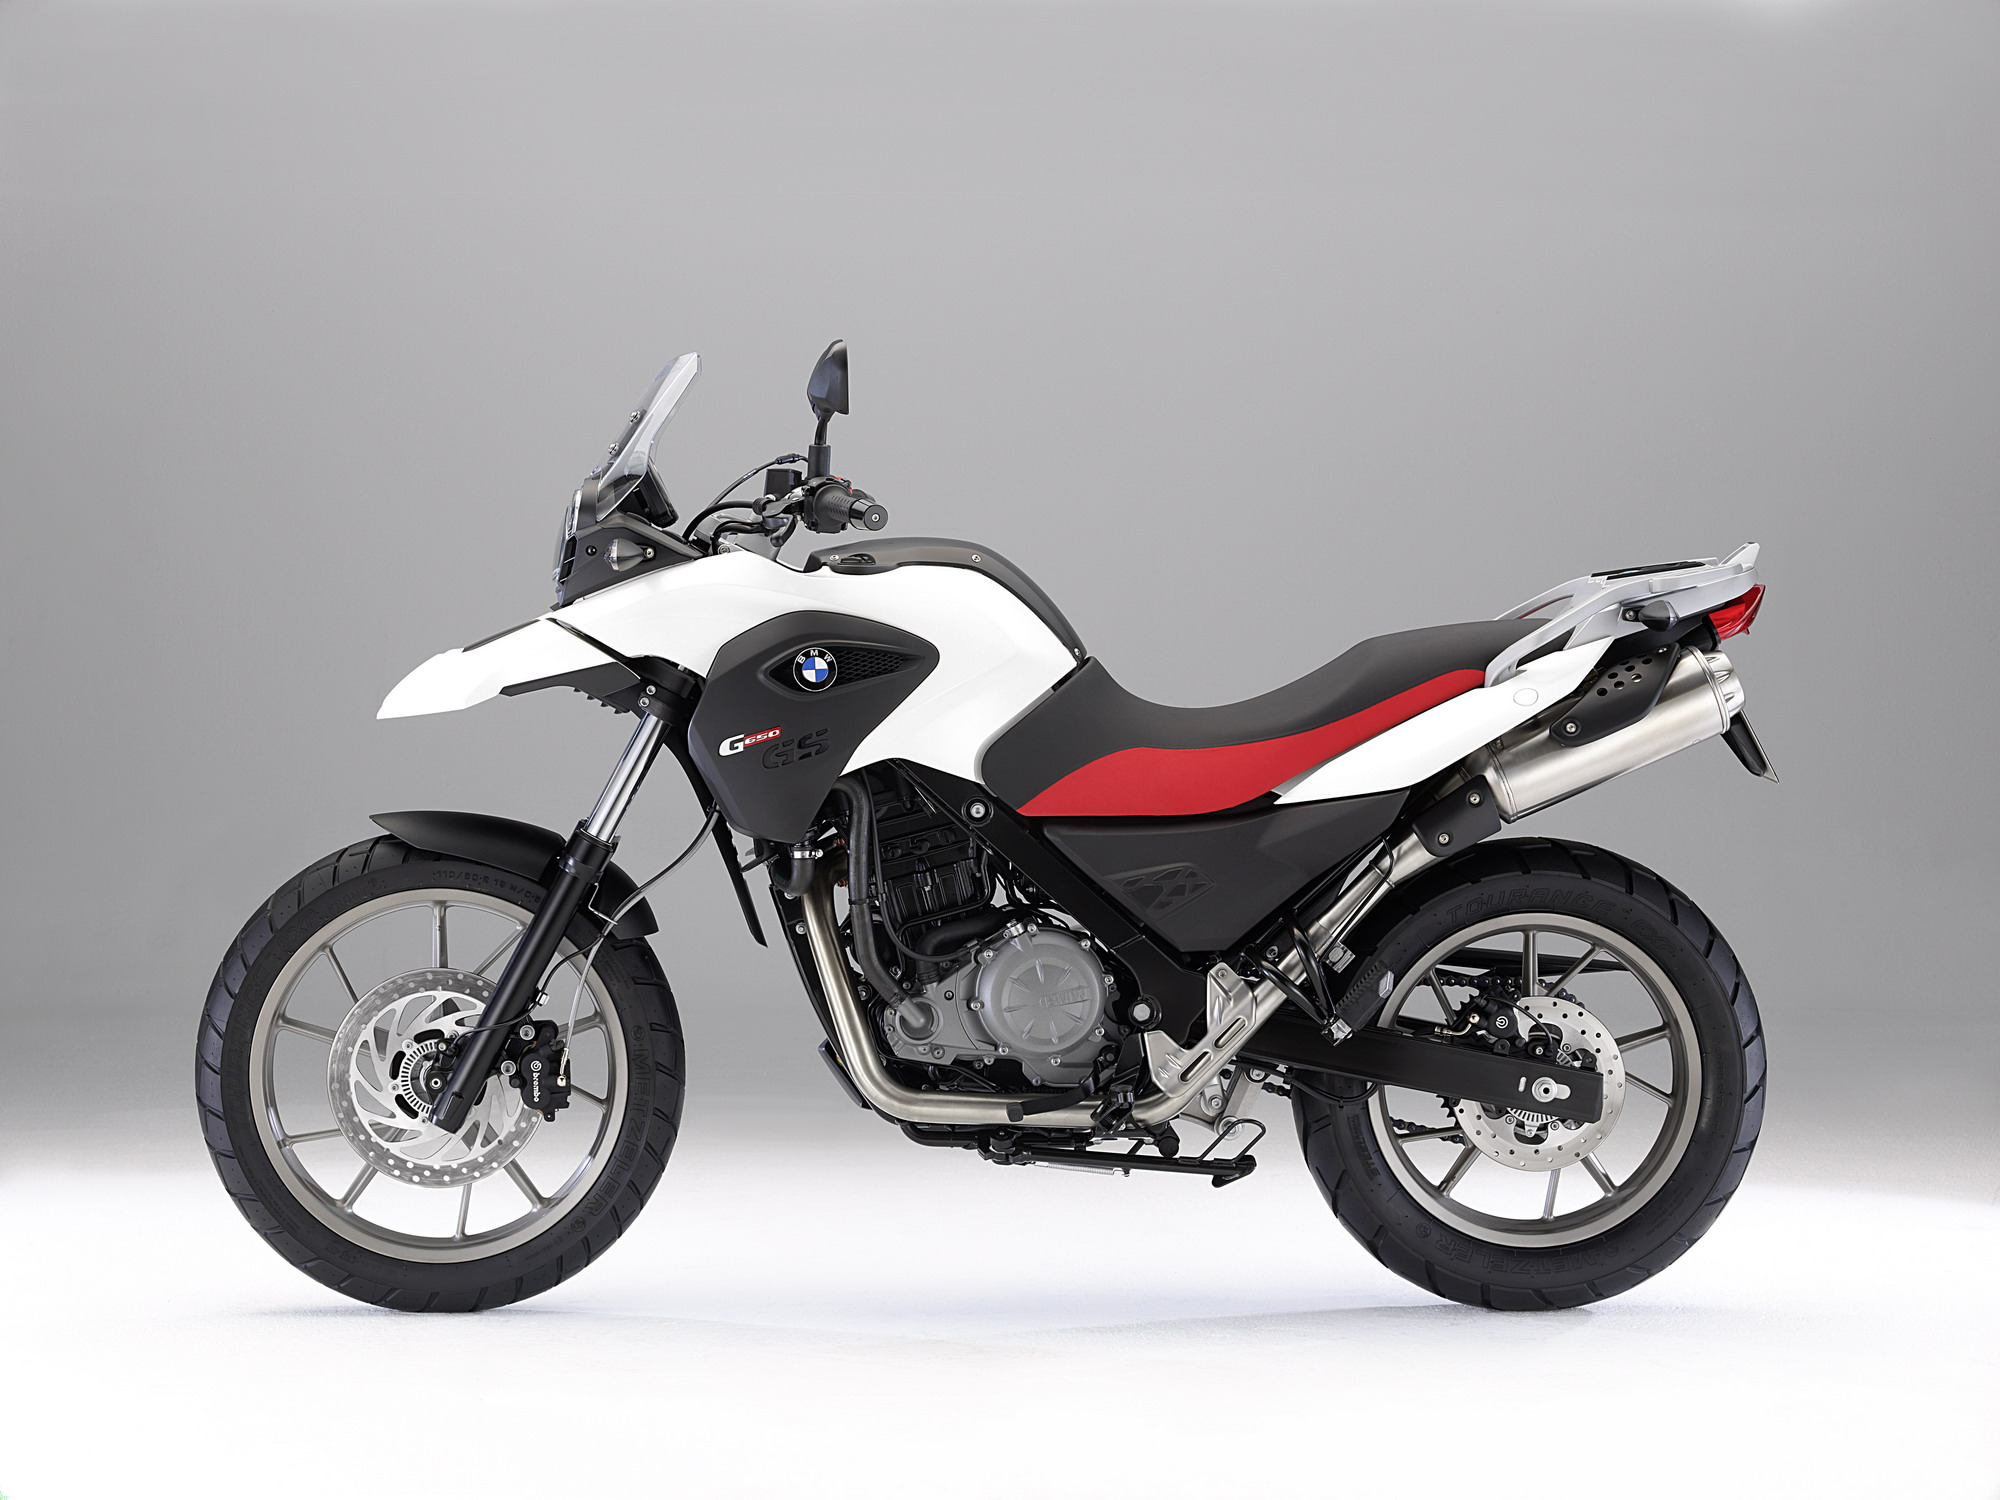 2011 BMW G650 GS | Top Speed. »